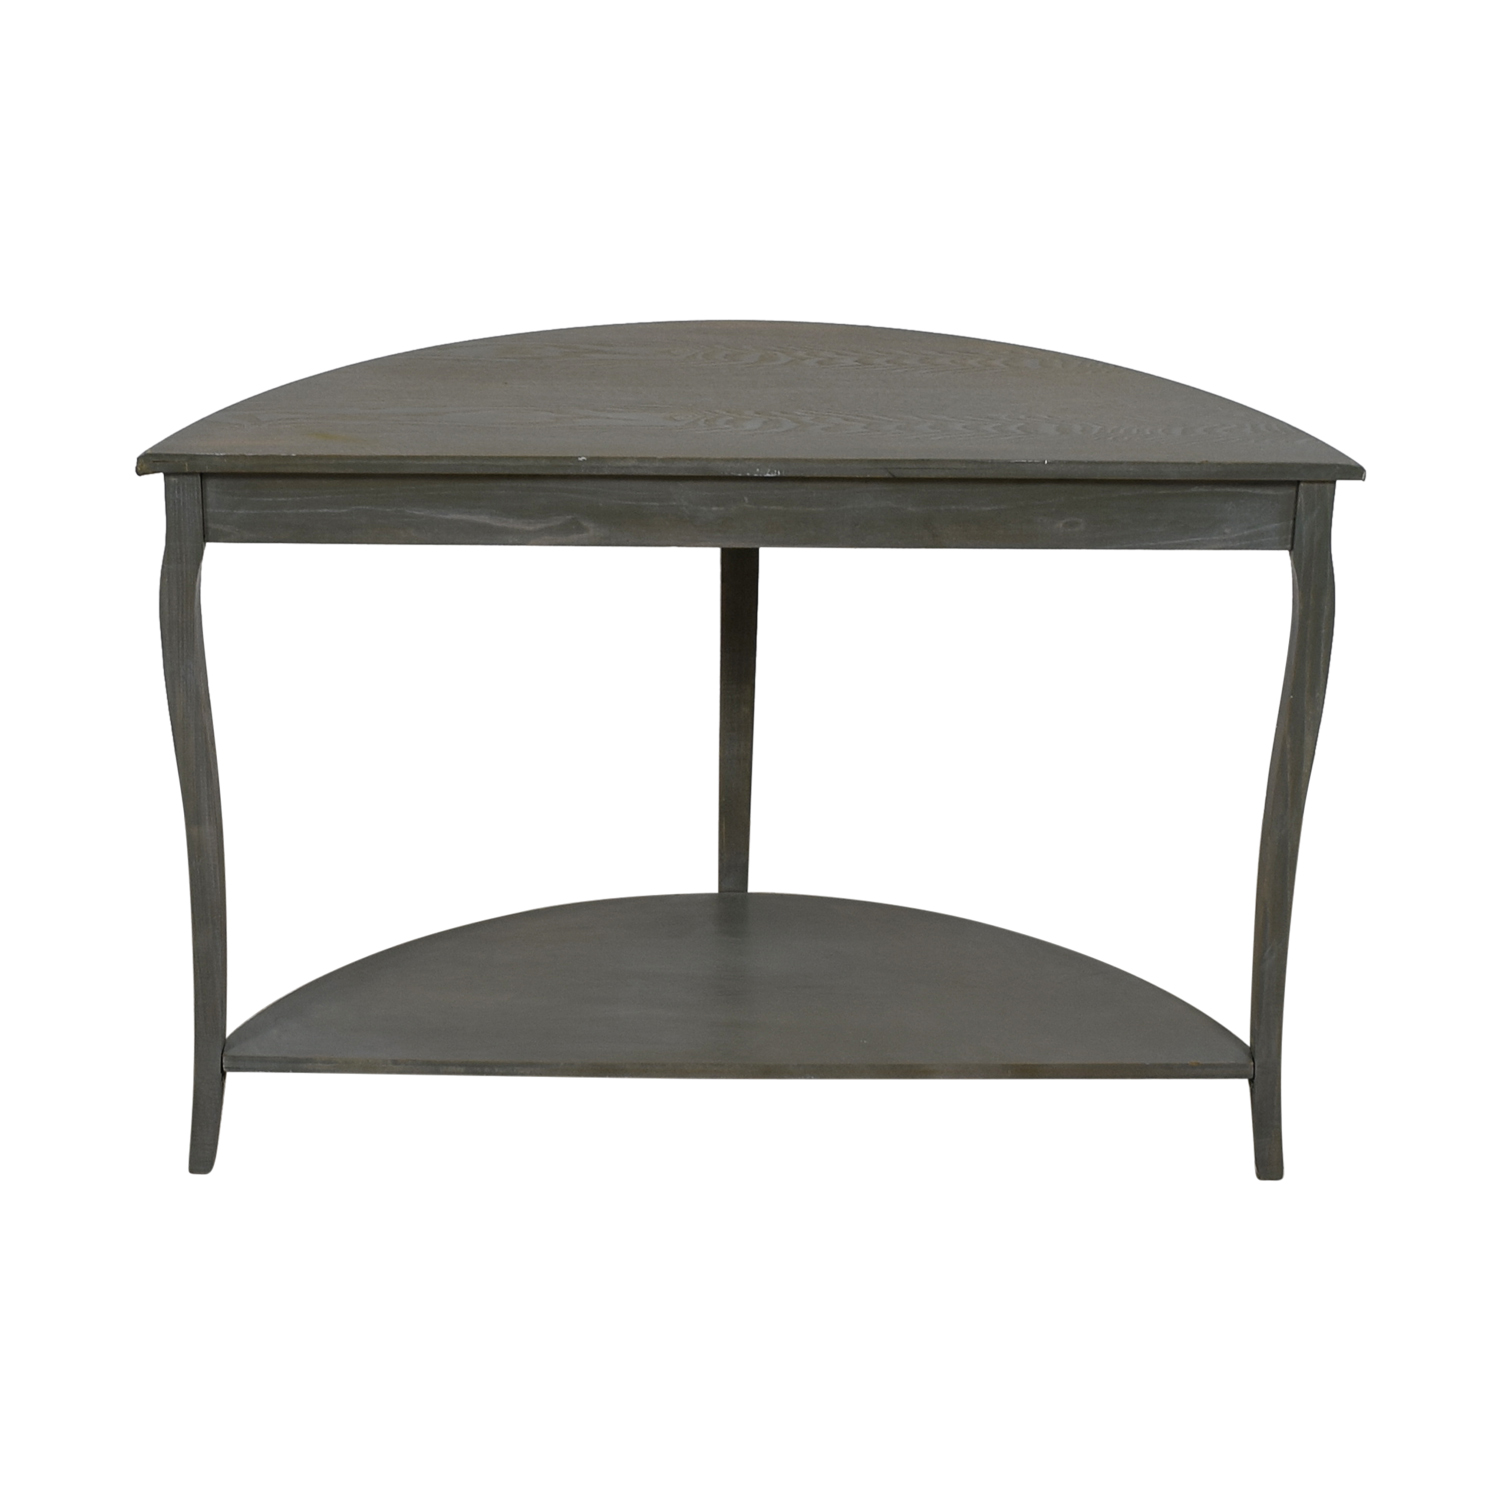 shop Safavieh Safavieh Randell Grey Console Table online